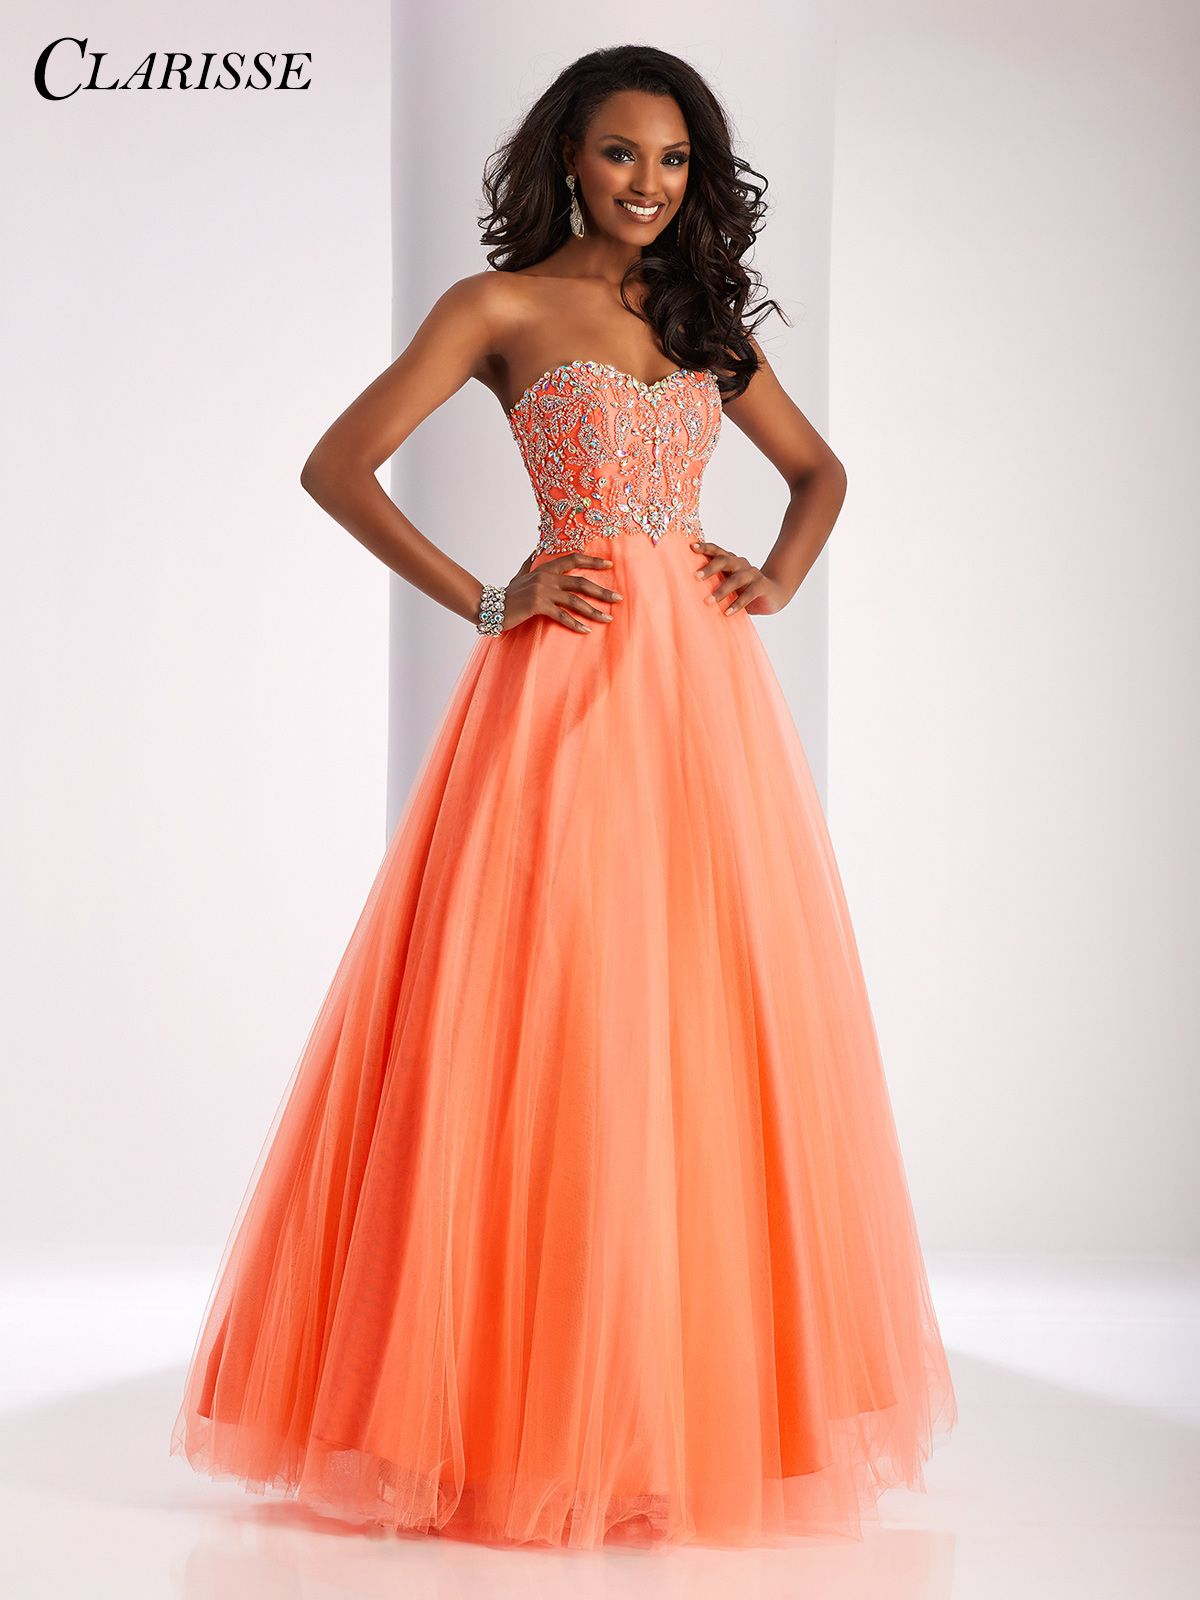 Clarisse 2017 prom dress style 3012. A classic strapless ...